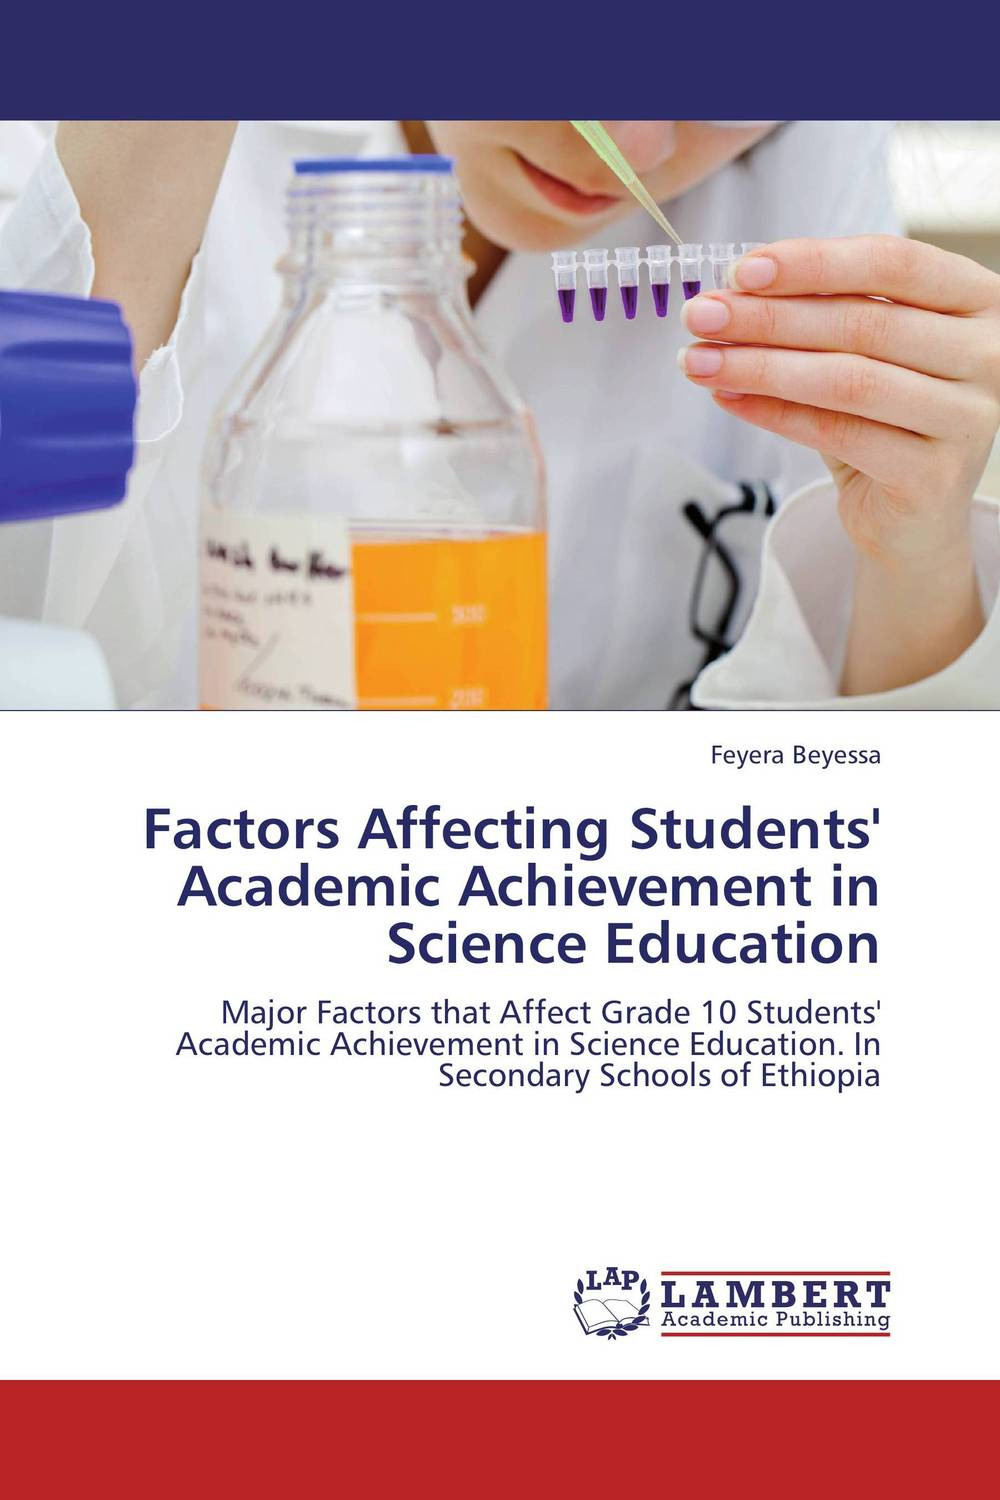 Factors Affecting Students' Academic Achievement in Science Education